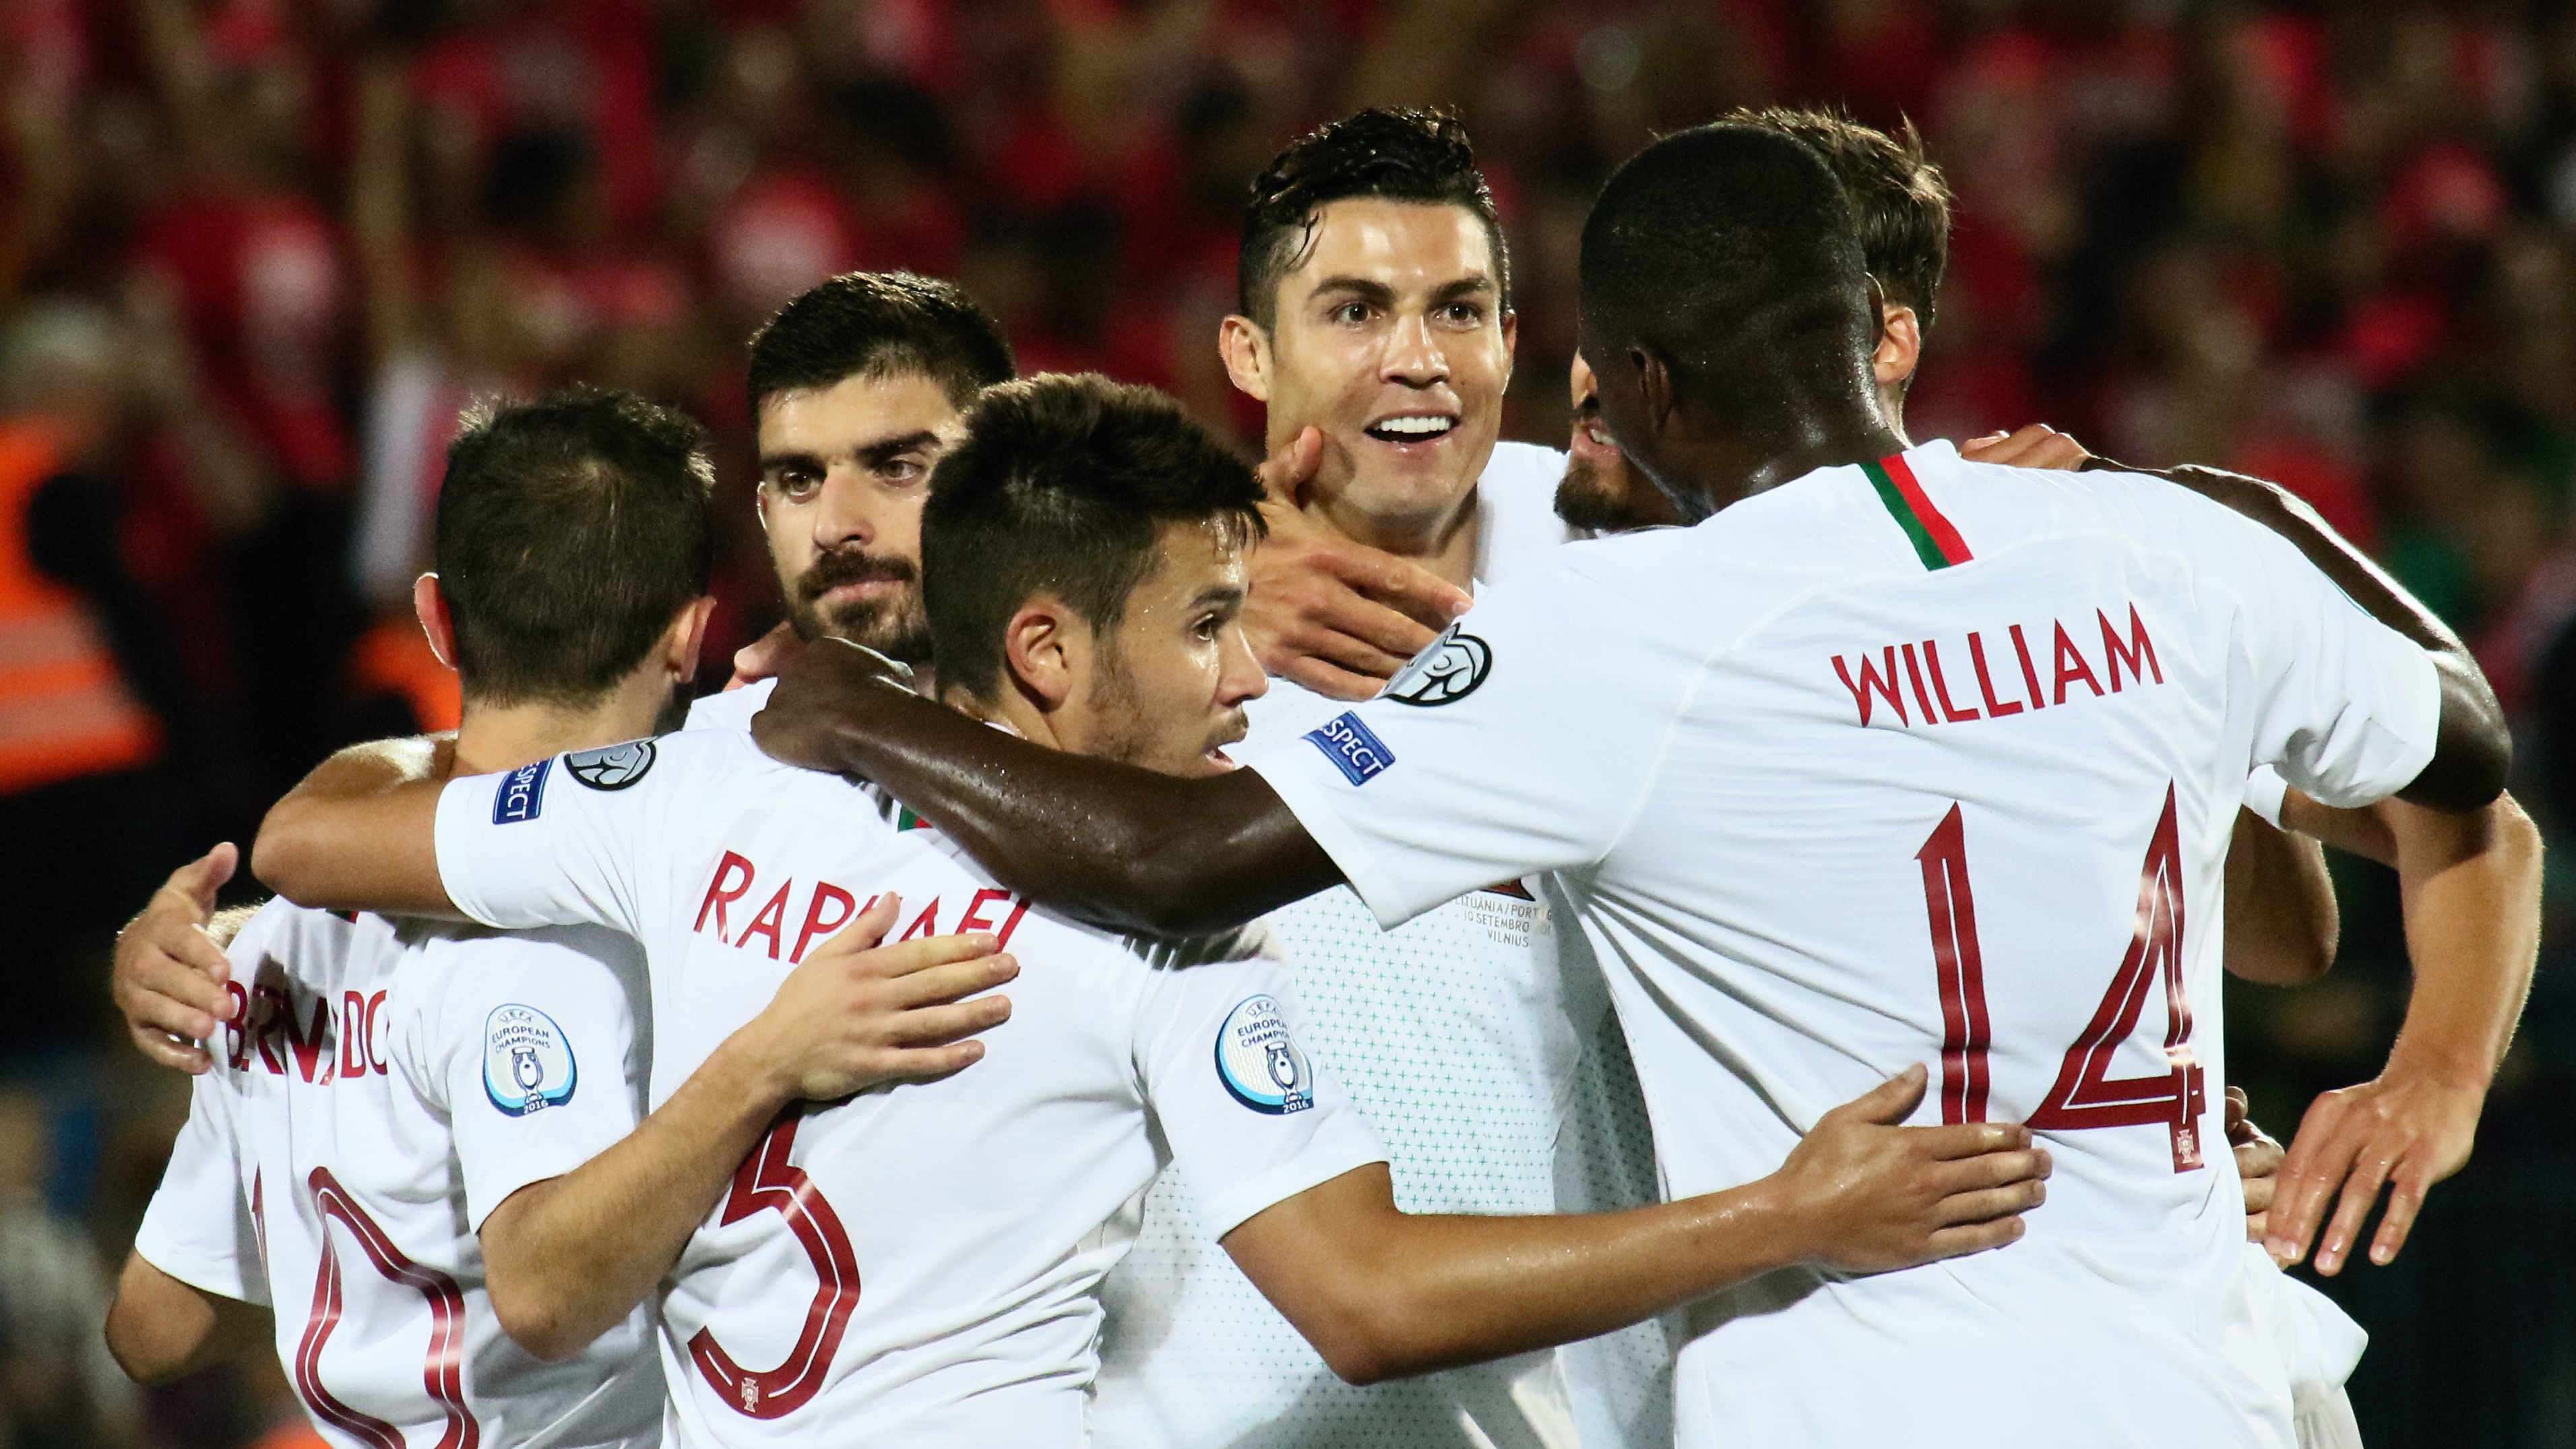 'I'm enjoying this moment' - Ronaldo breaks Euro qualifying goal record in Portugal win